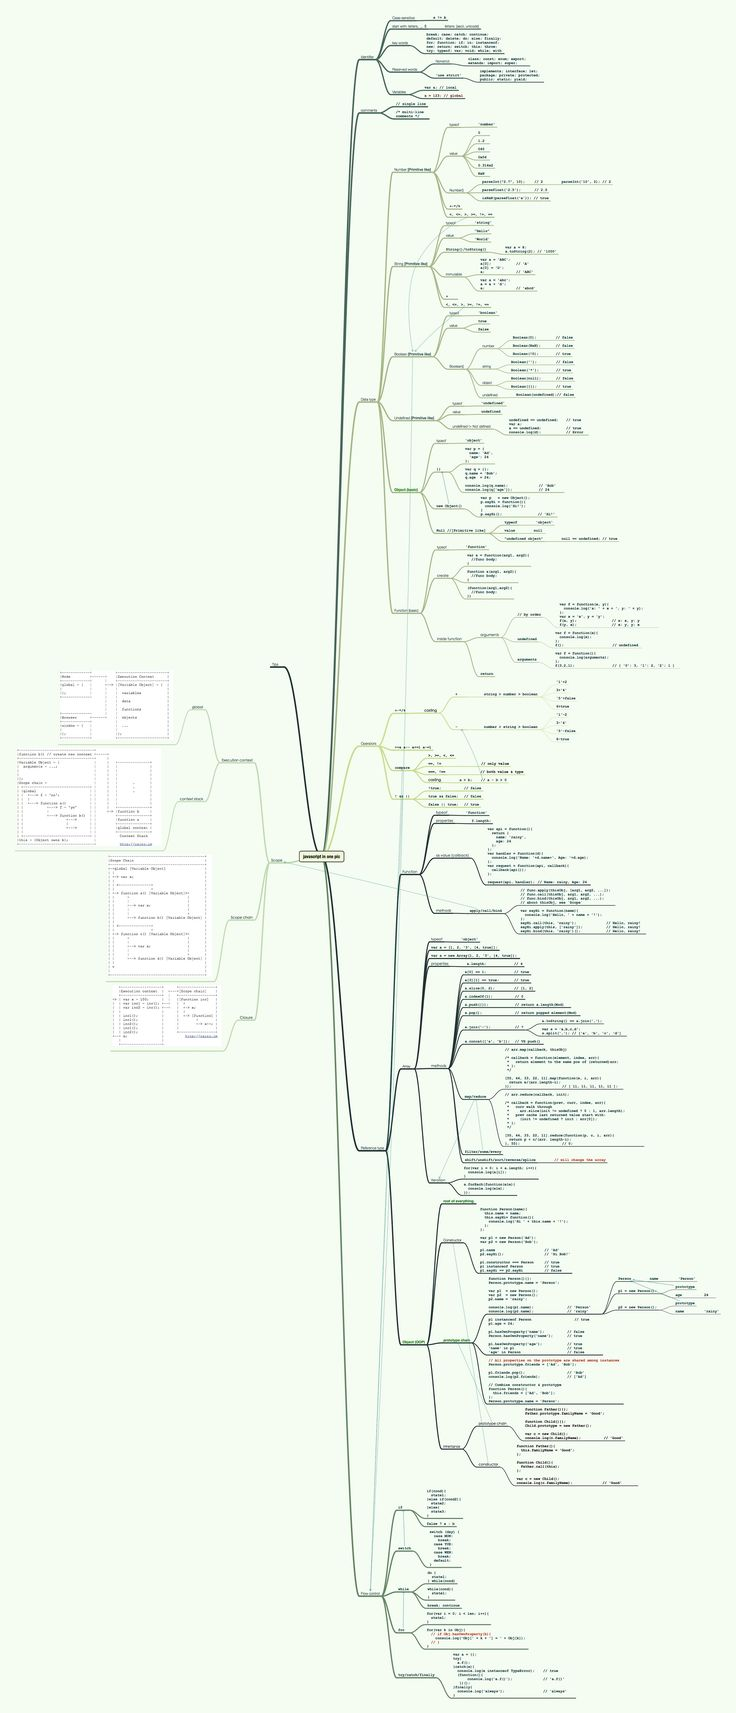 infographic-the-entire-javascript-language-in-one-single-image-491250-2